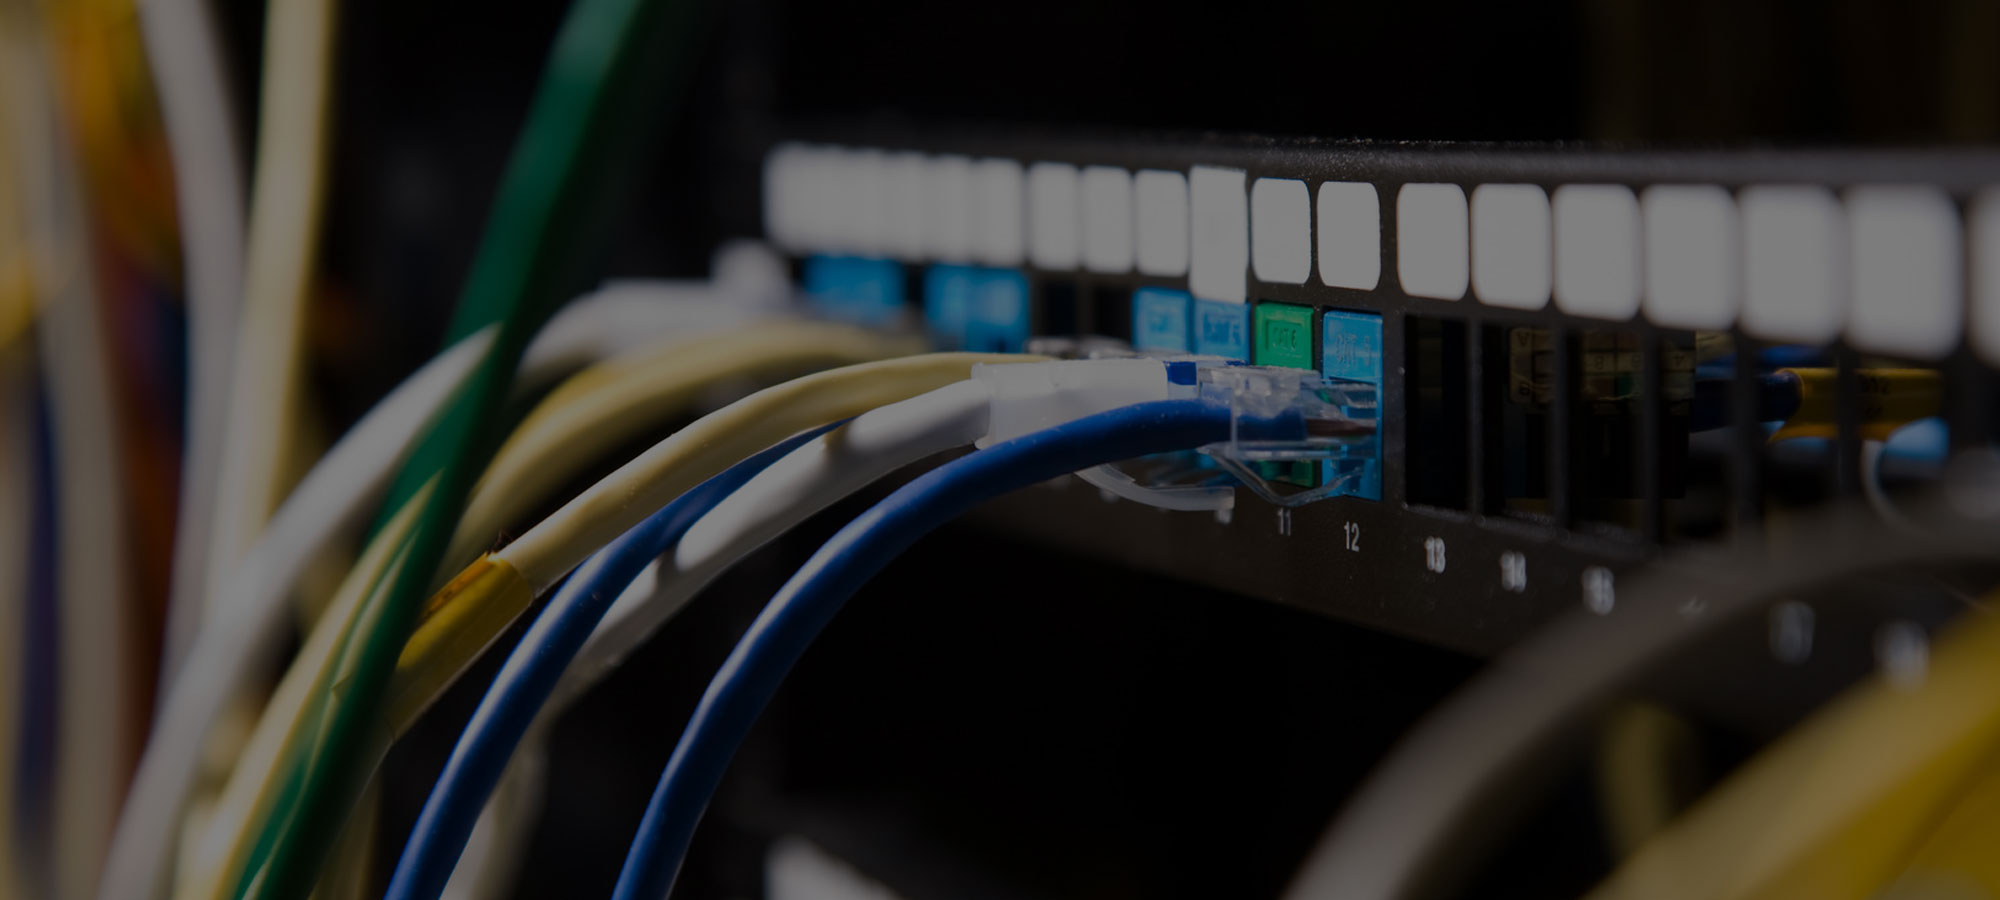 Atkins Data Telephone Service Home Page Contact Us To Learn More About Our Structured Wiring Services N